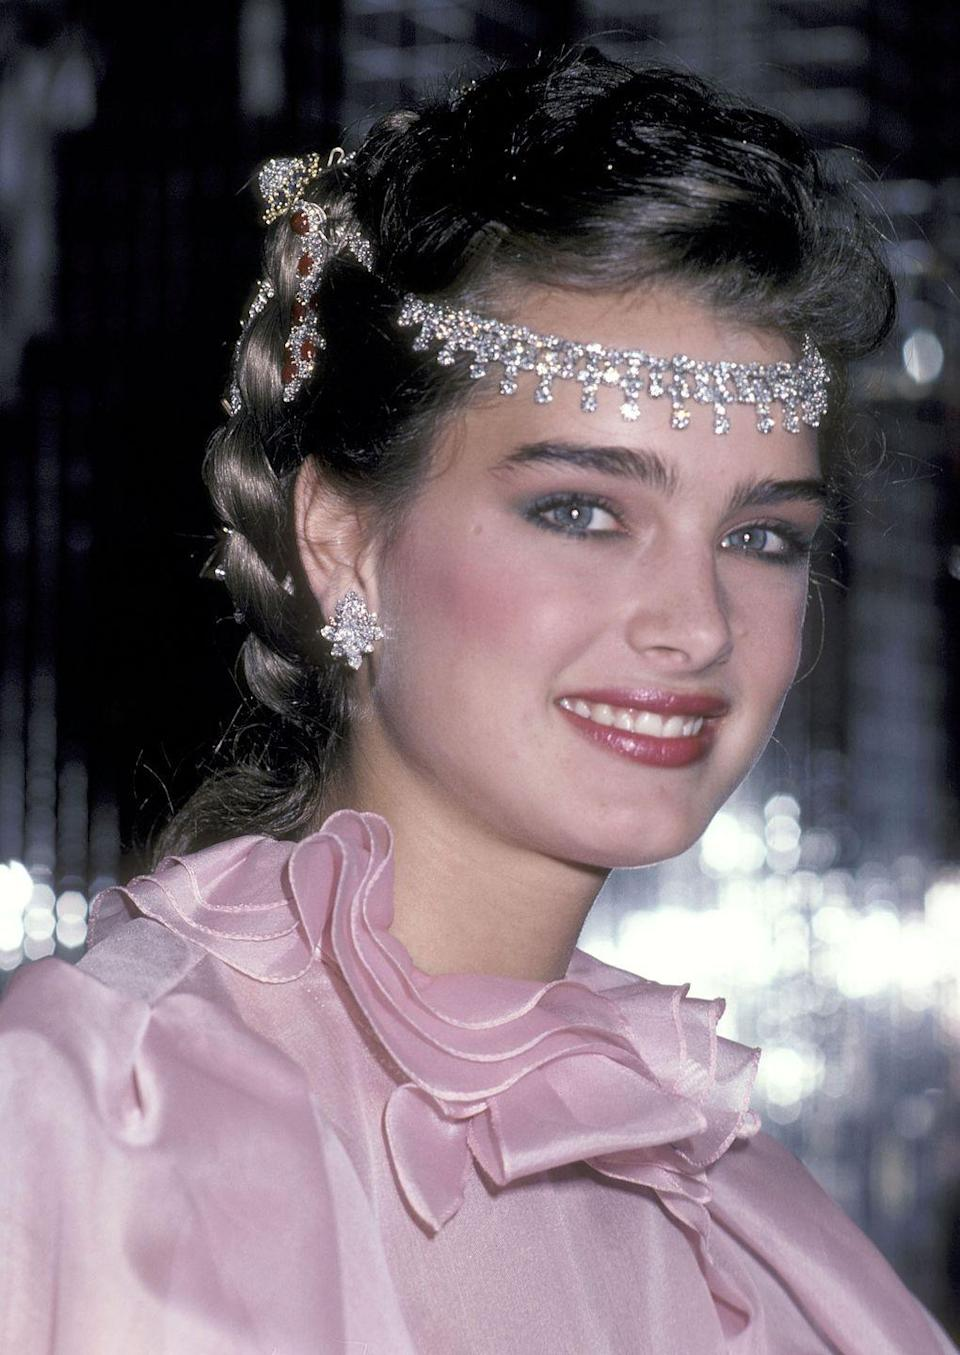 <p>At just 16 years old, Shields was photographed attending a party in New York in 1981. The gathering was in celebration of Shields becoming a spokesperson for Wella Corporation, a hair care company.</p>